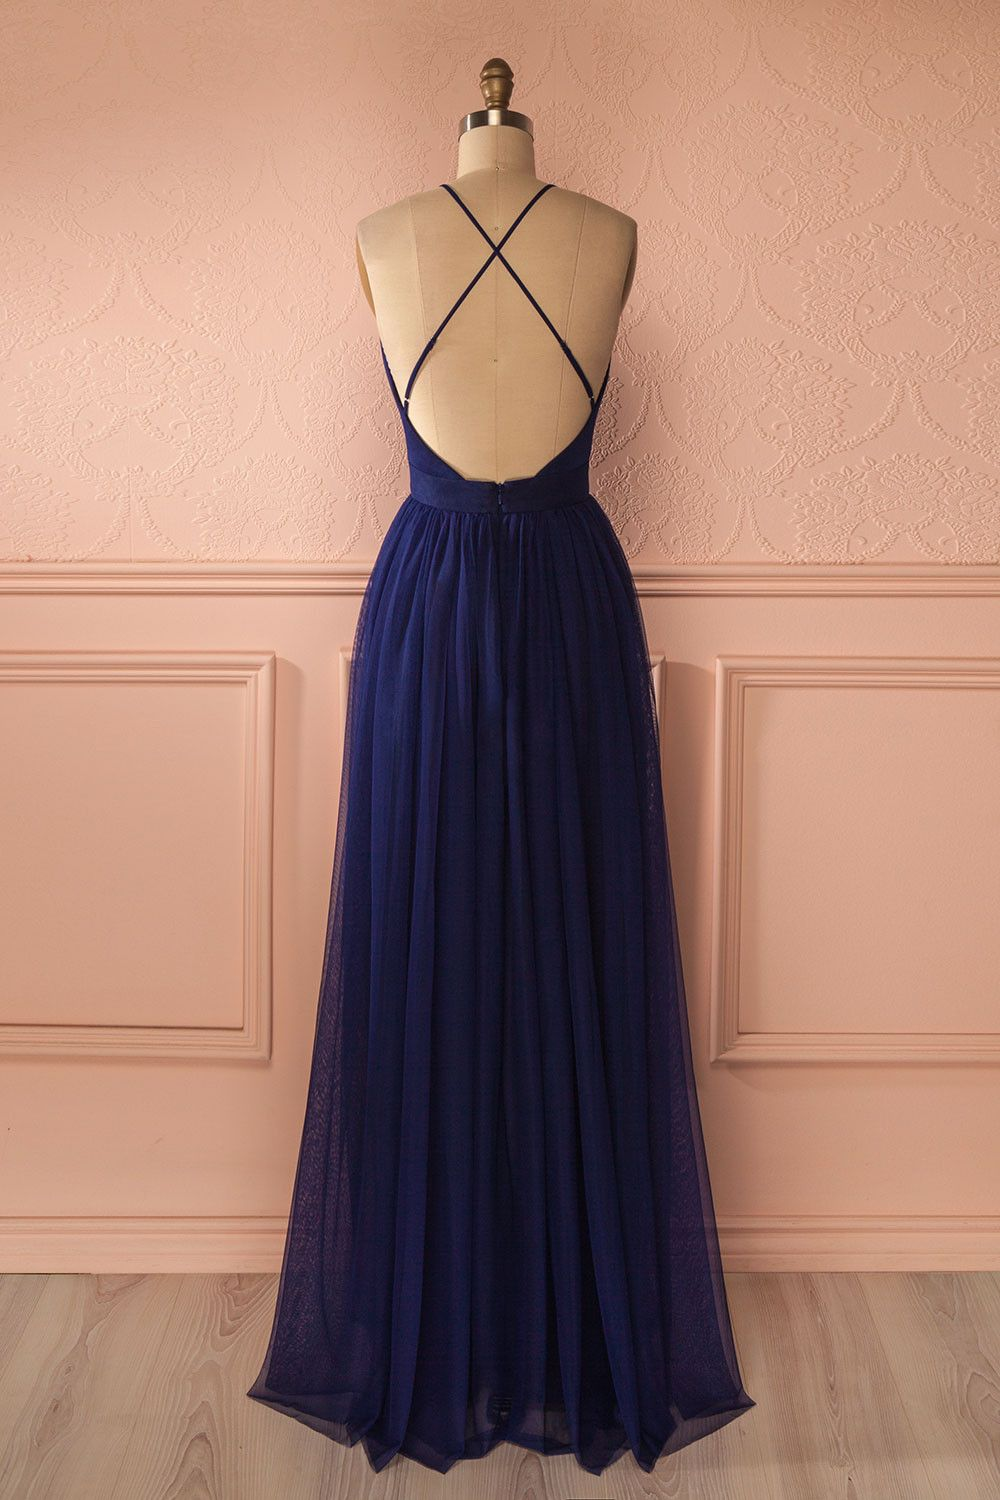 Prom dresses prom dresses fashion navy blue tulle backless prom